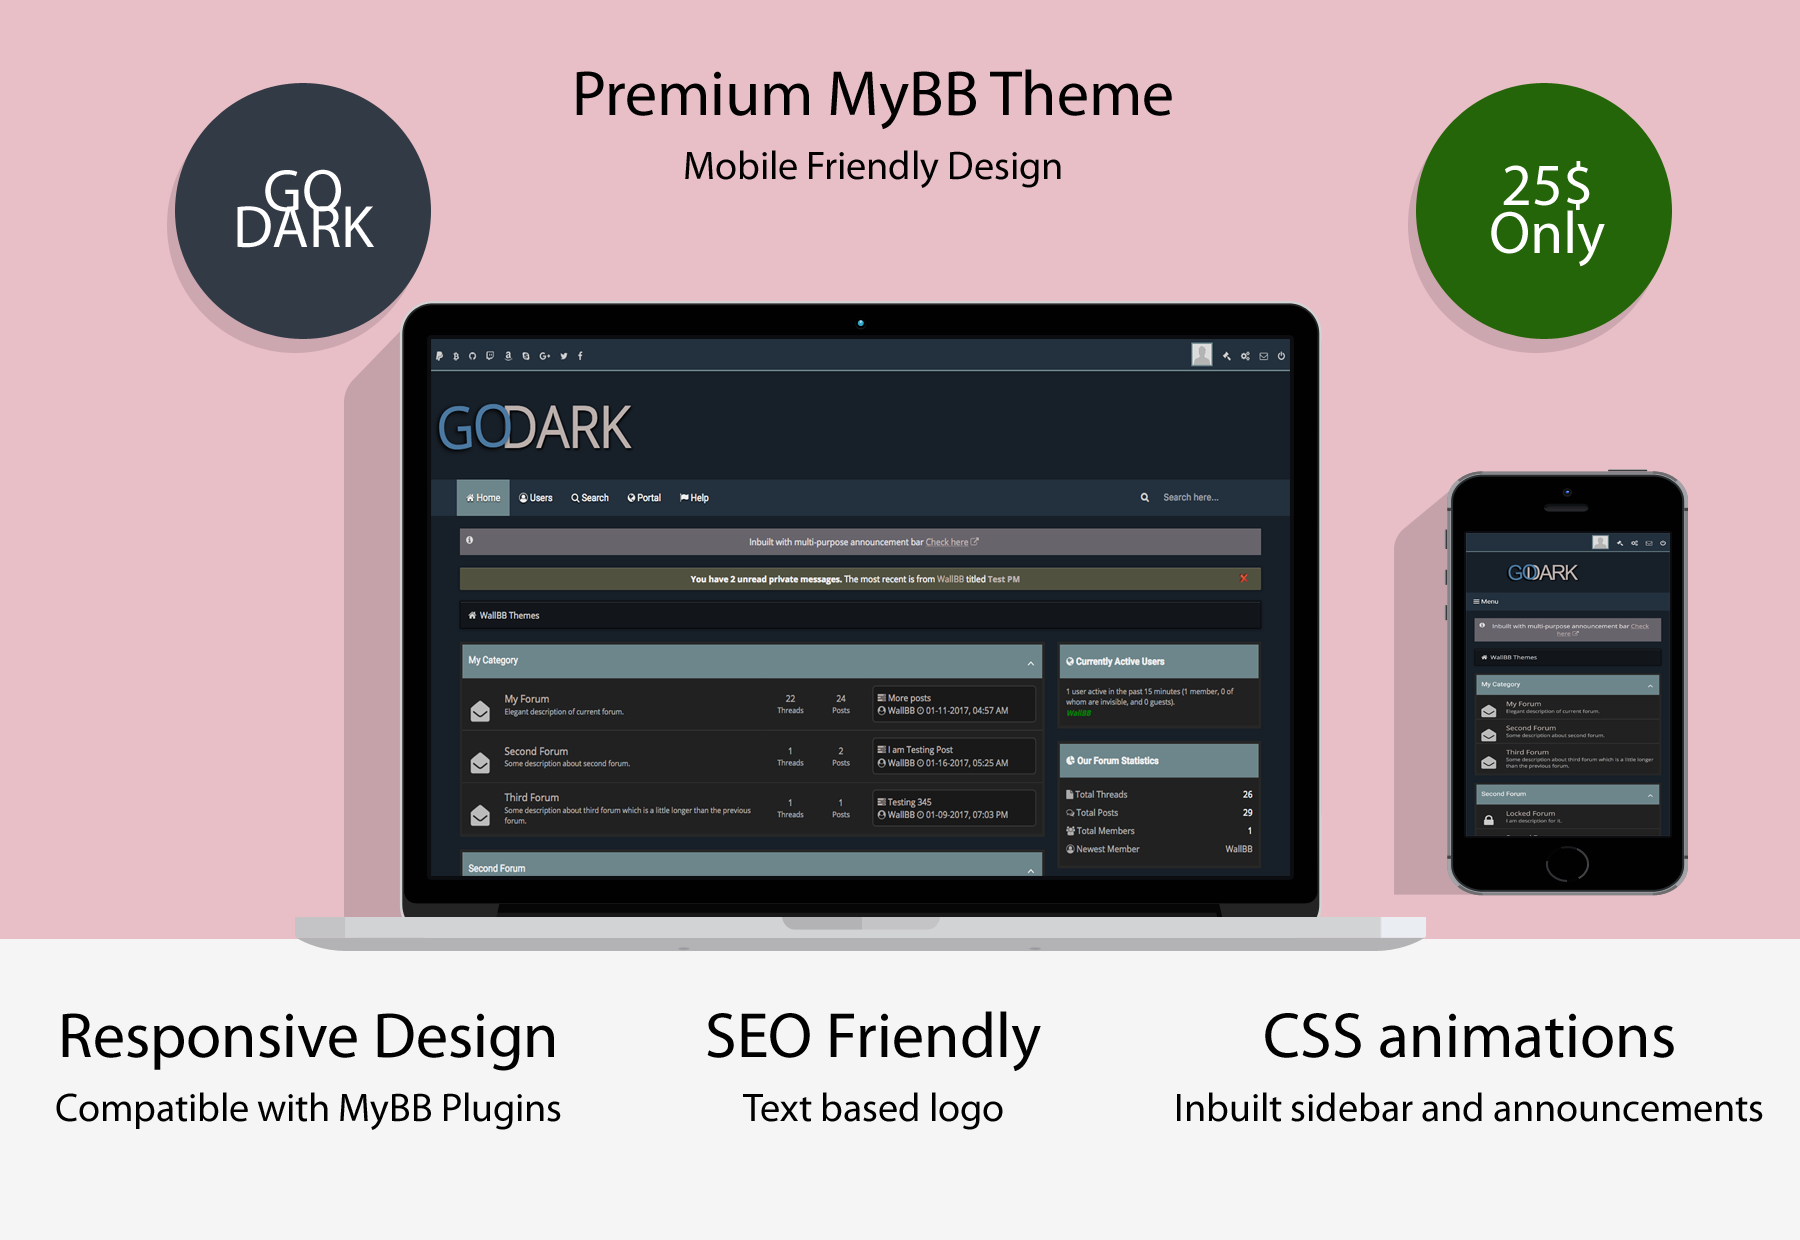 Go Dark Mobile Friendly Premium MyBB Theme